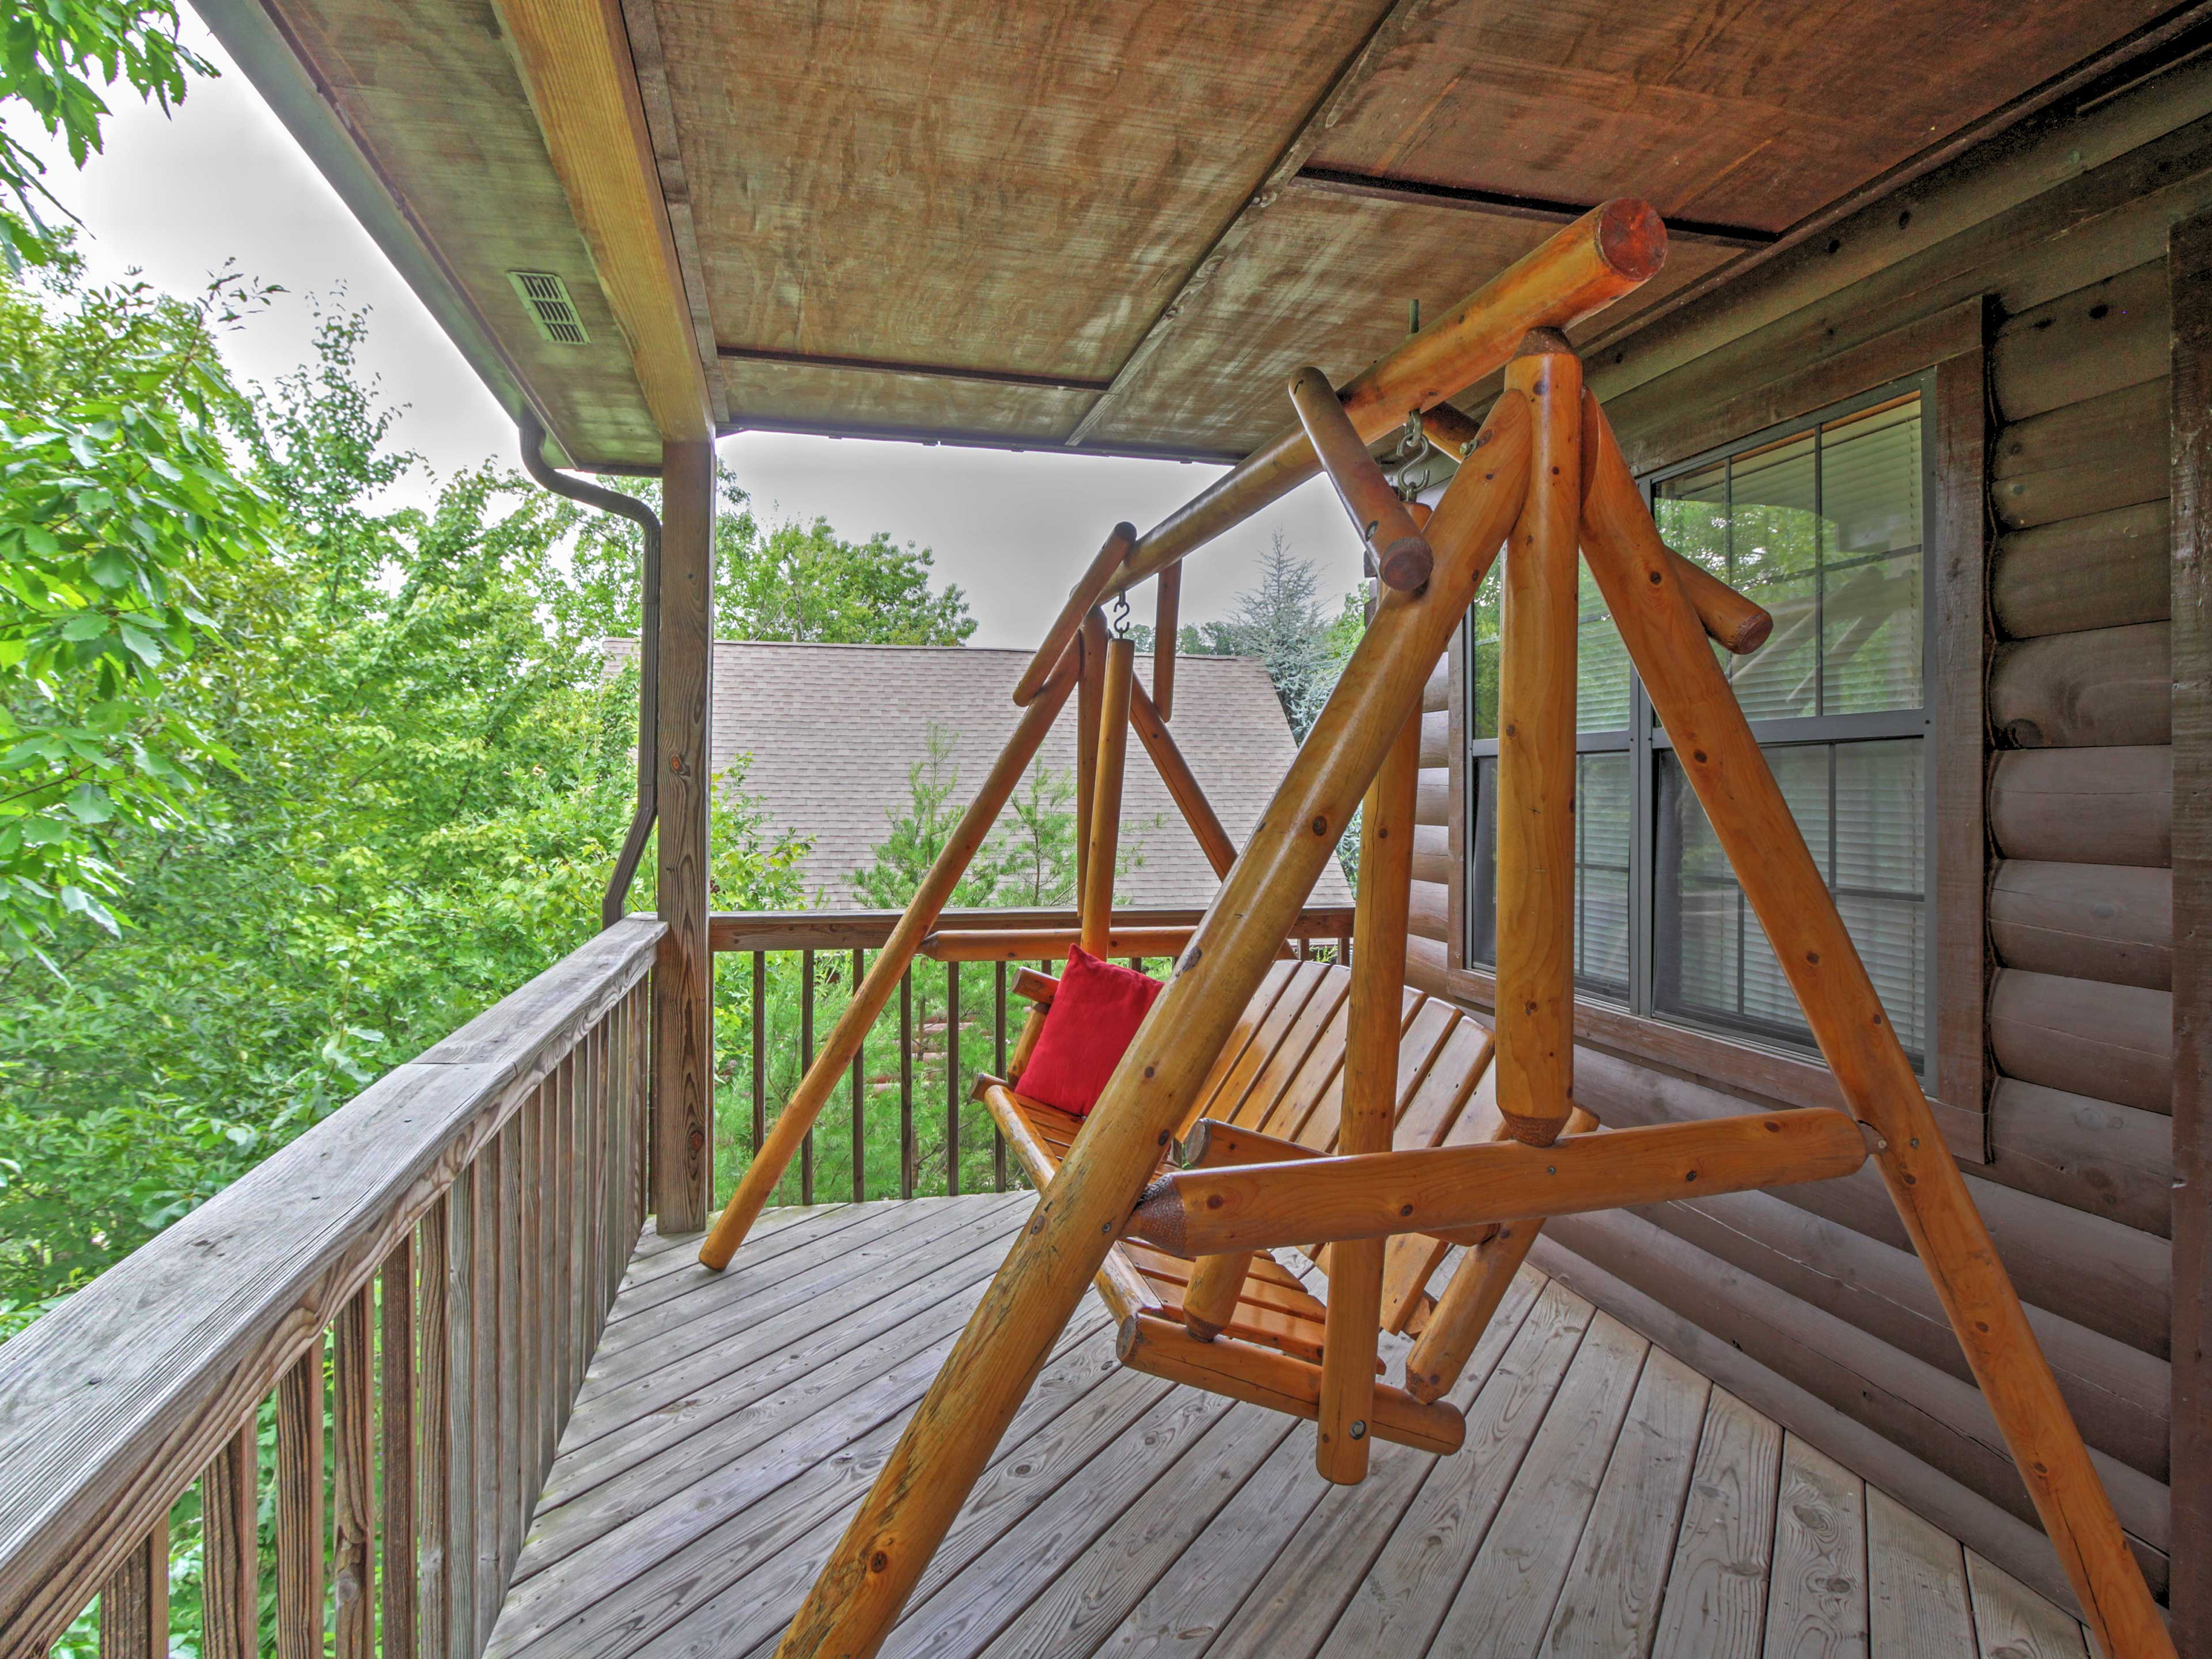 You'll have no problem finding relaxation on the lovely porch swing.